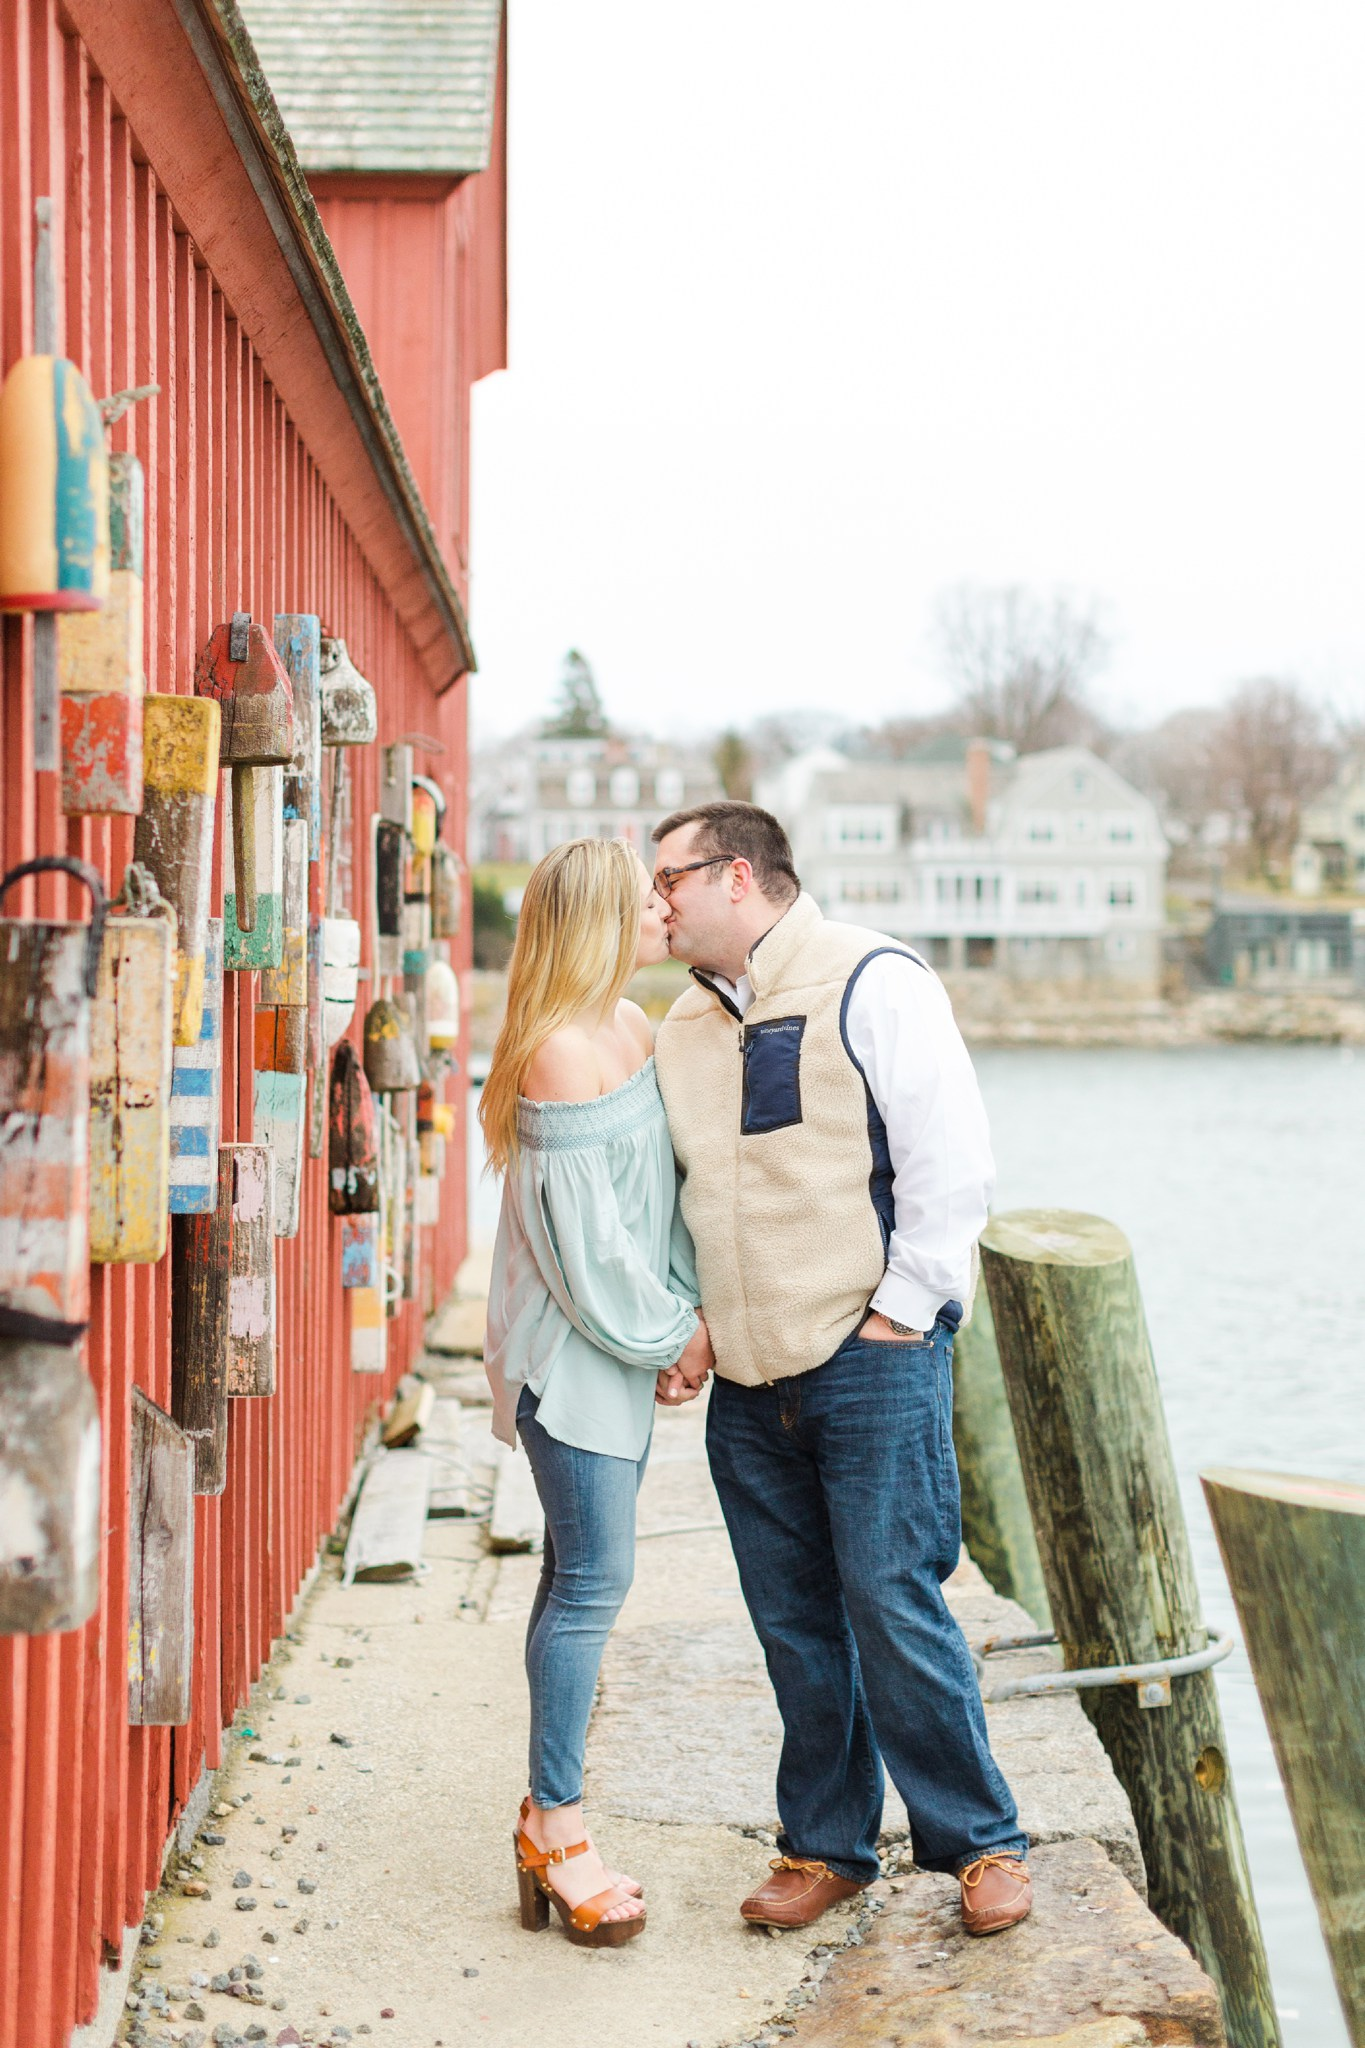 rockport_MA_engagement_session_Deborah_Zoe_Photography_00159.JPG